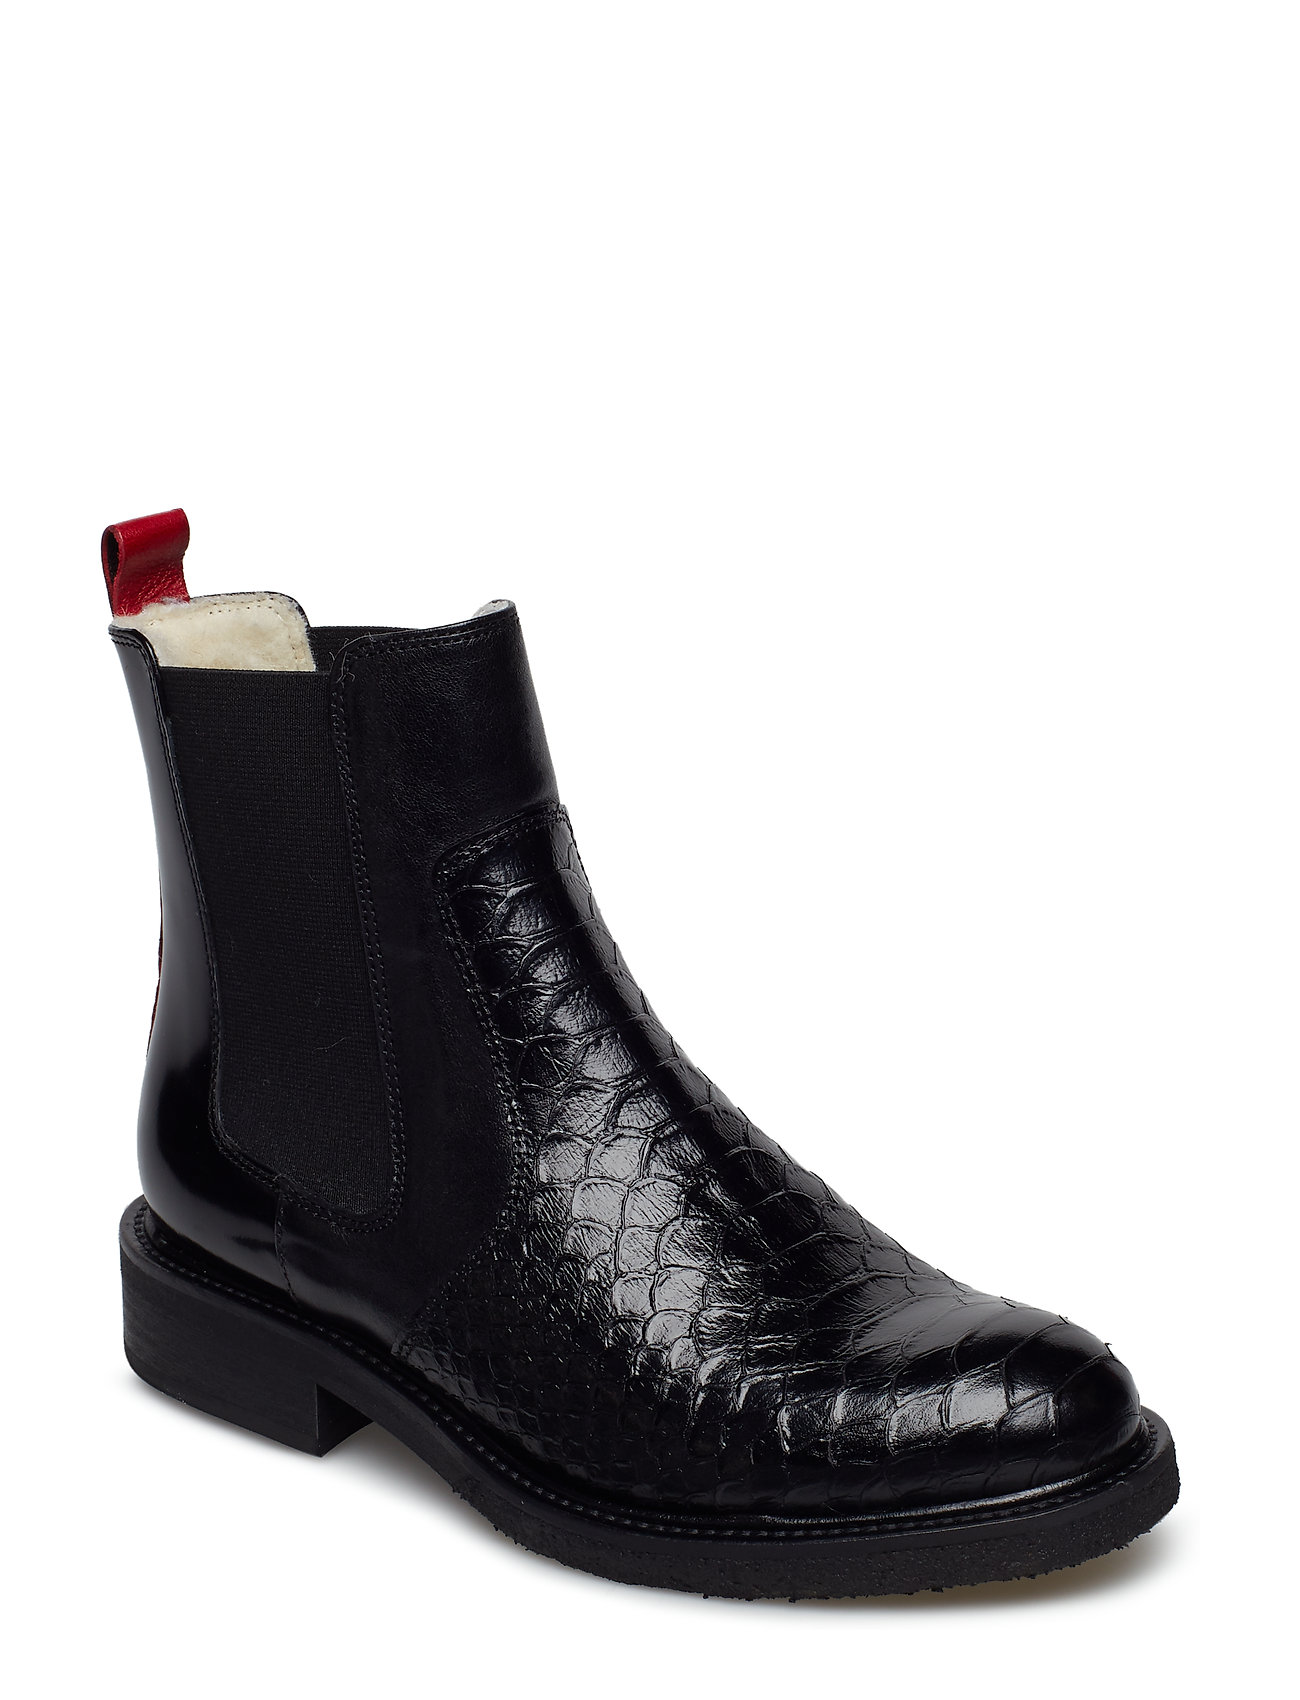 Image of Warm Lining 17424 Shoes Chelsea Boots Ankle Boots Ankle Boot - Flat Sort Billi Bi (3458924003)